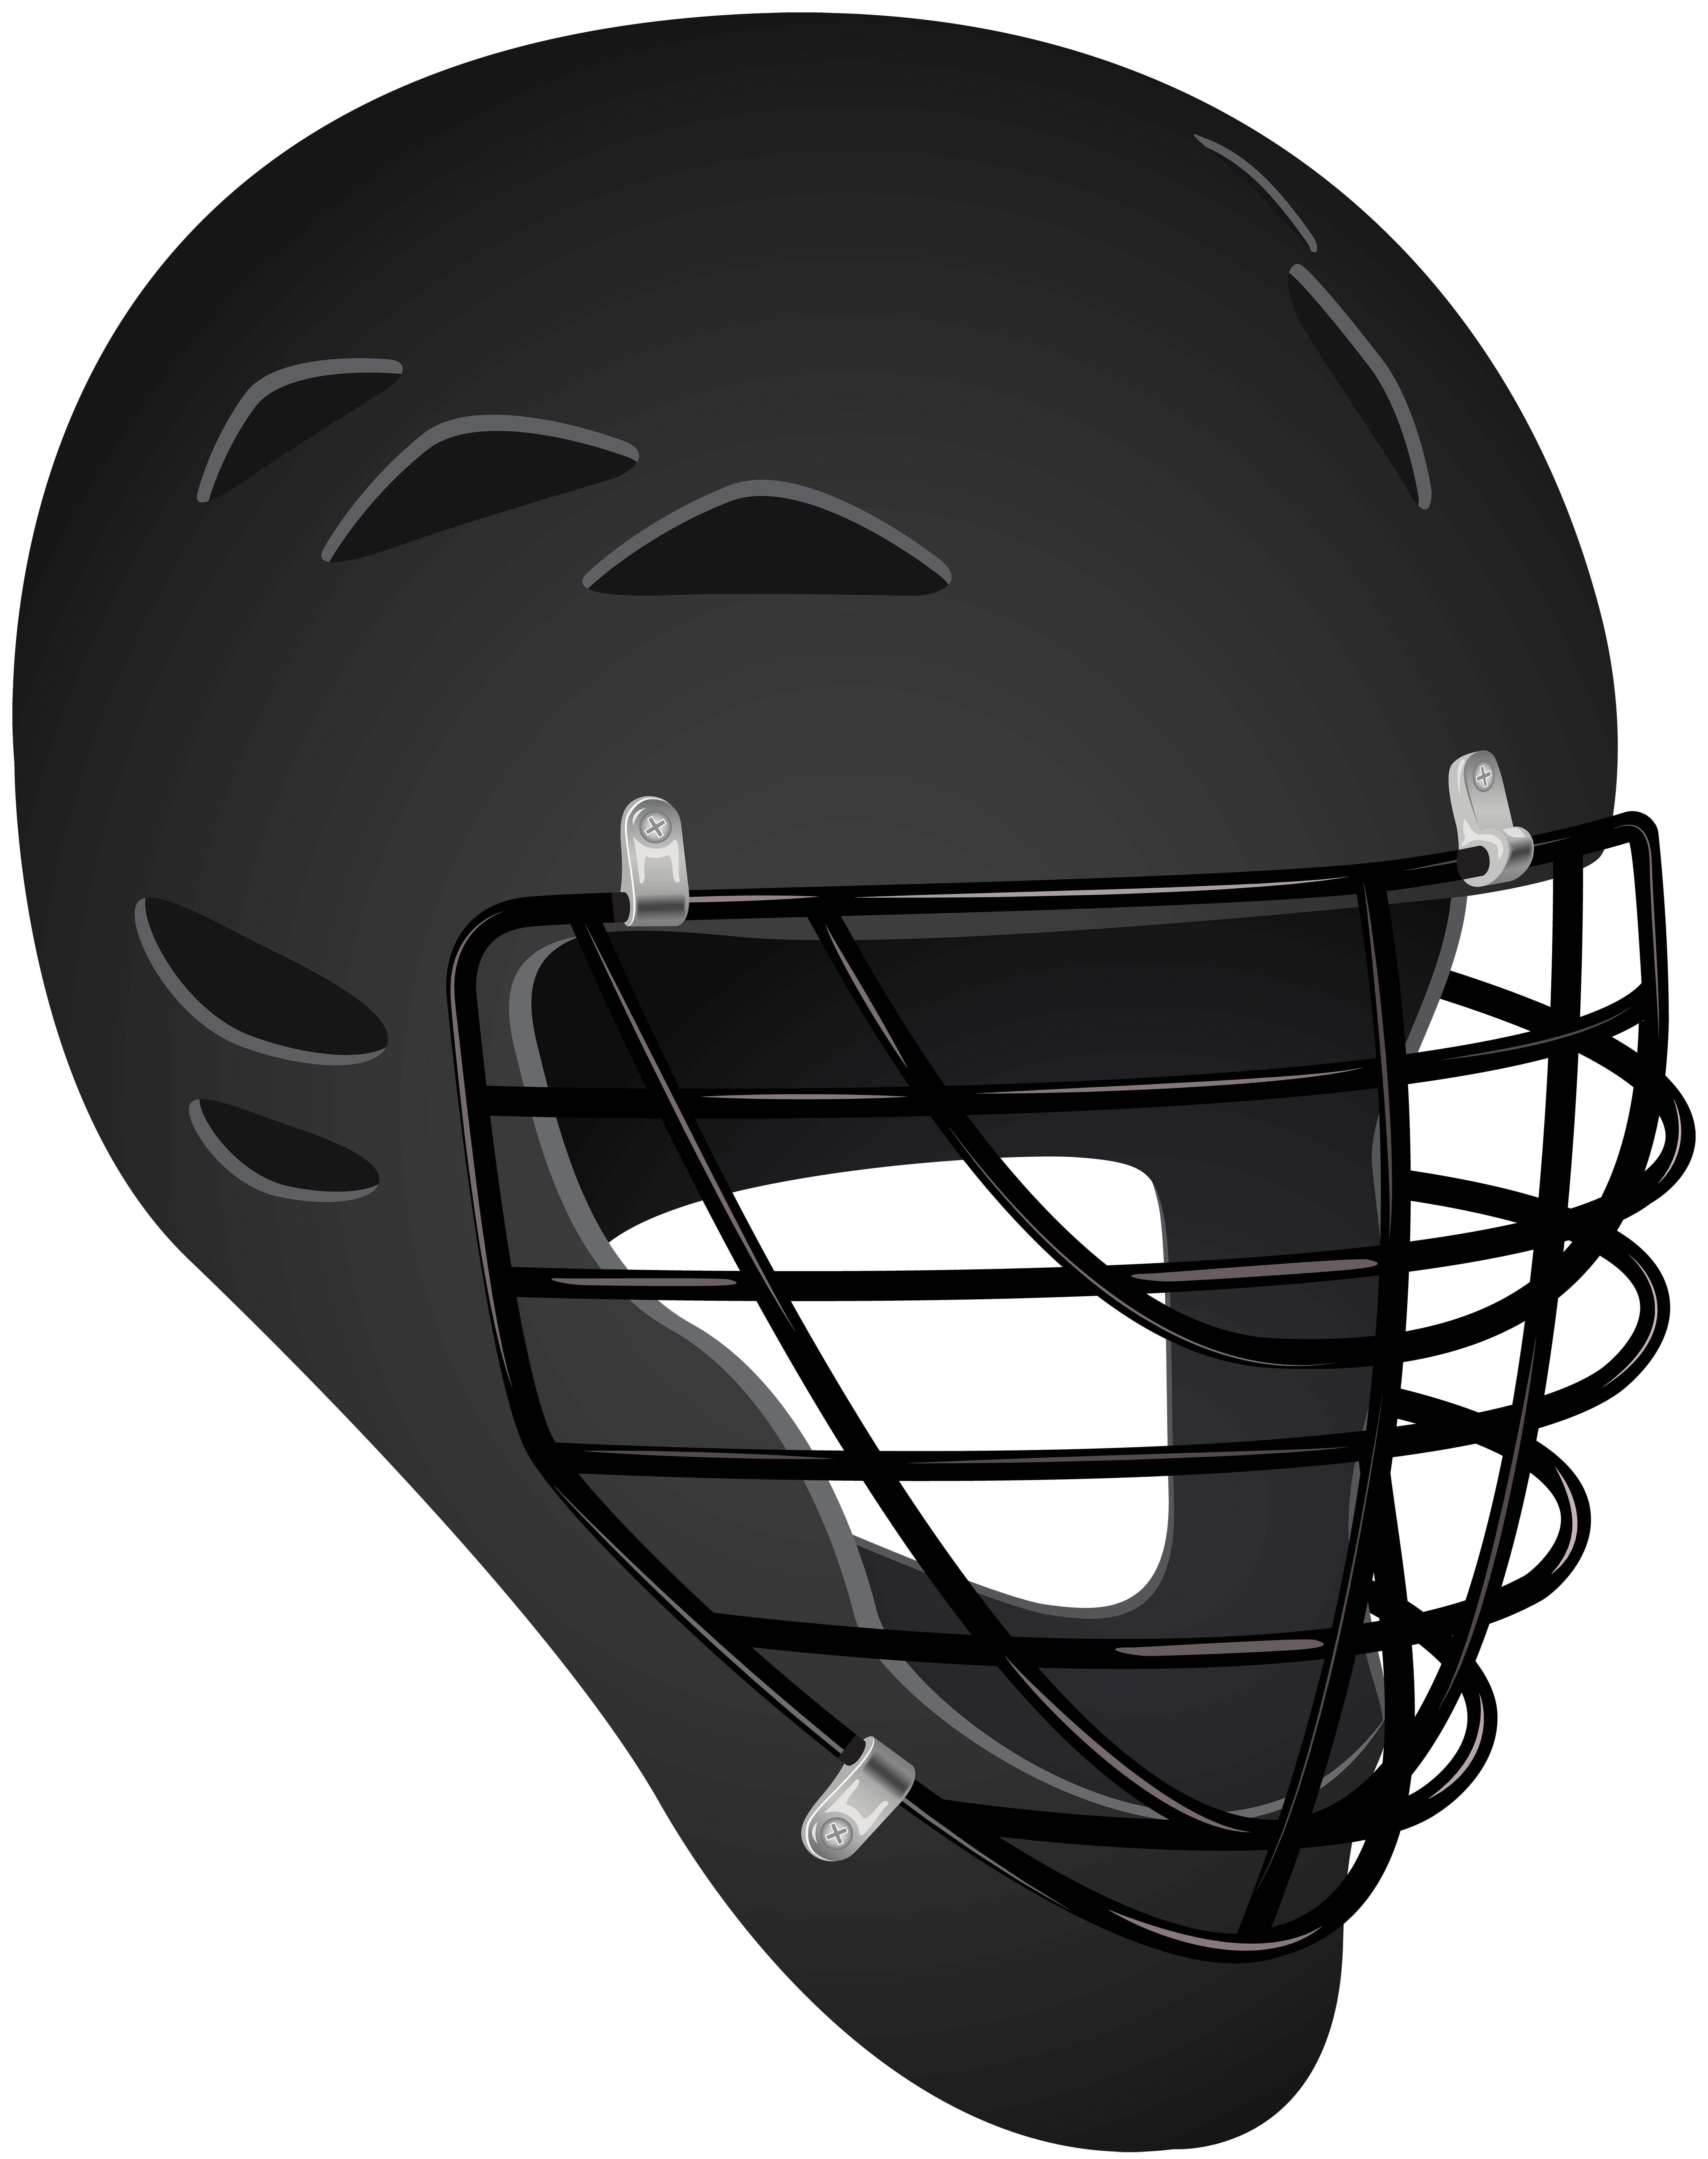 Hockey Helmet PNG Clip Art Image | Gallery Yopriceville - High ... graphic free stock